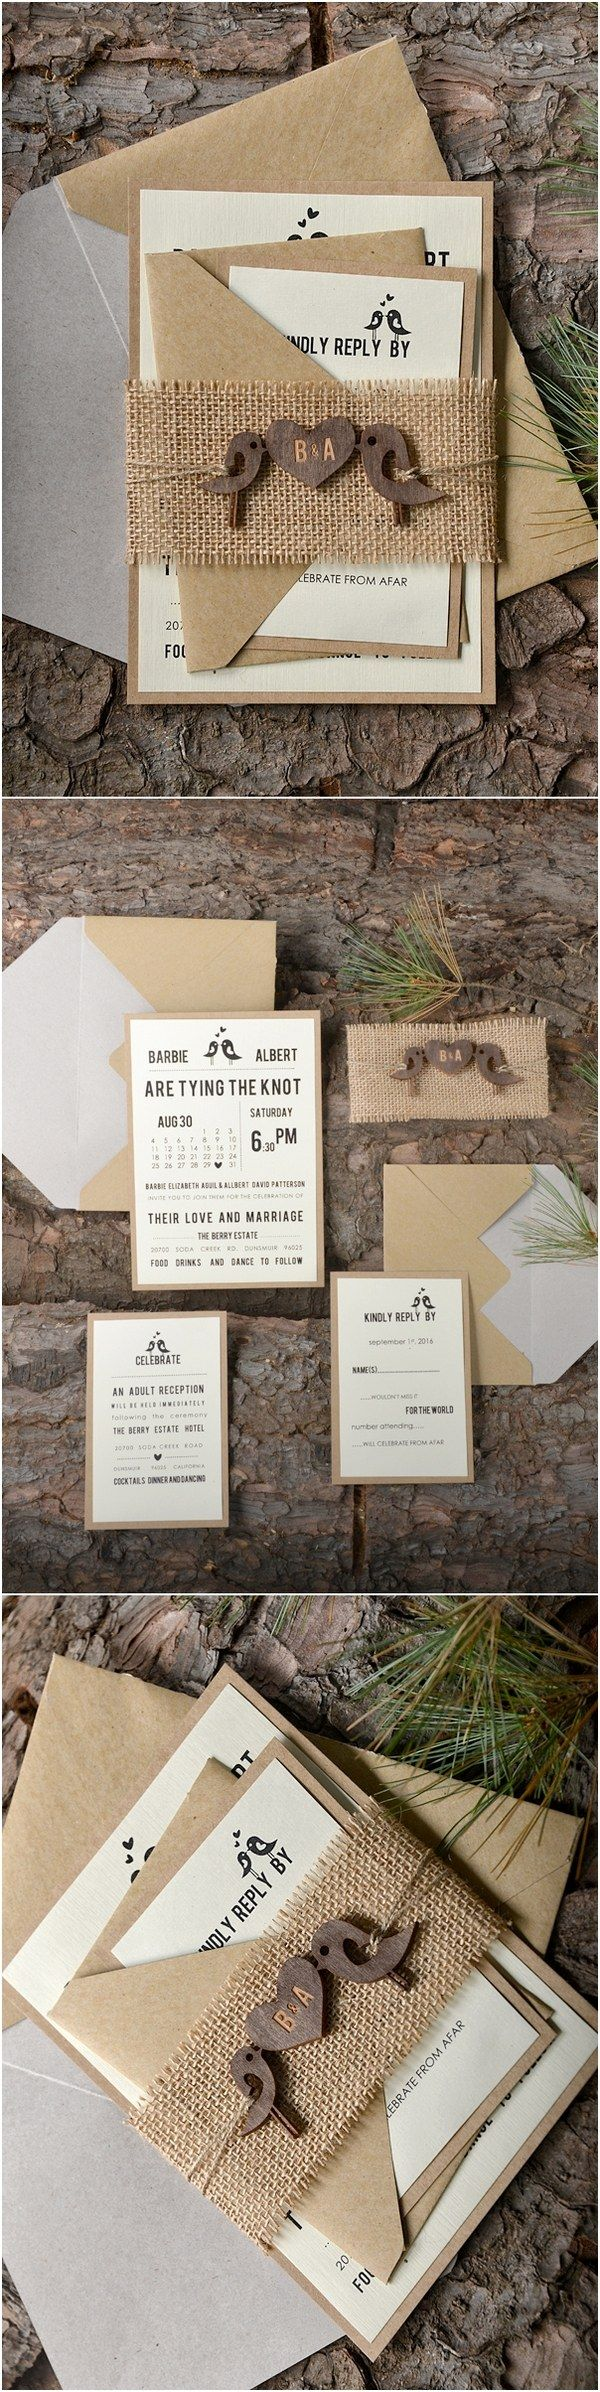 Rustic country barn burlap love Birds wedding invitations #rusticwedding #weddingideas #countrywedding @4LOVEPolkaDots